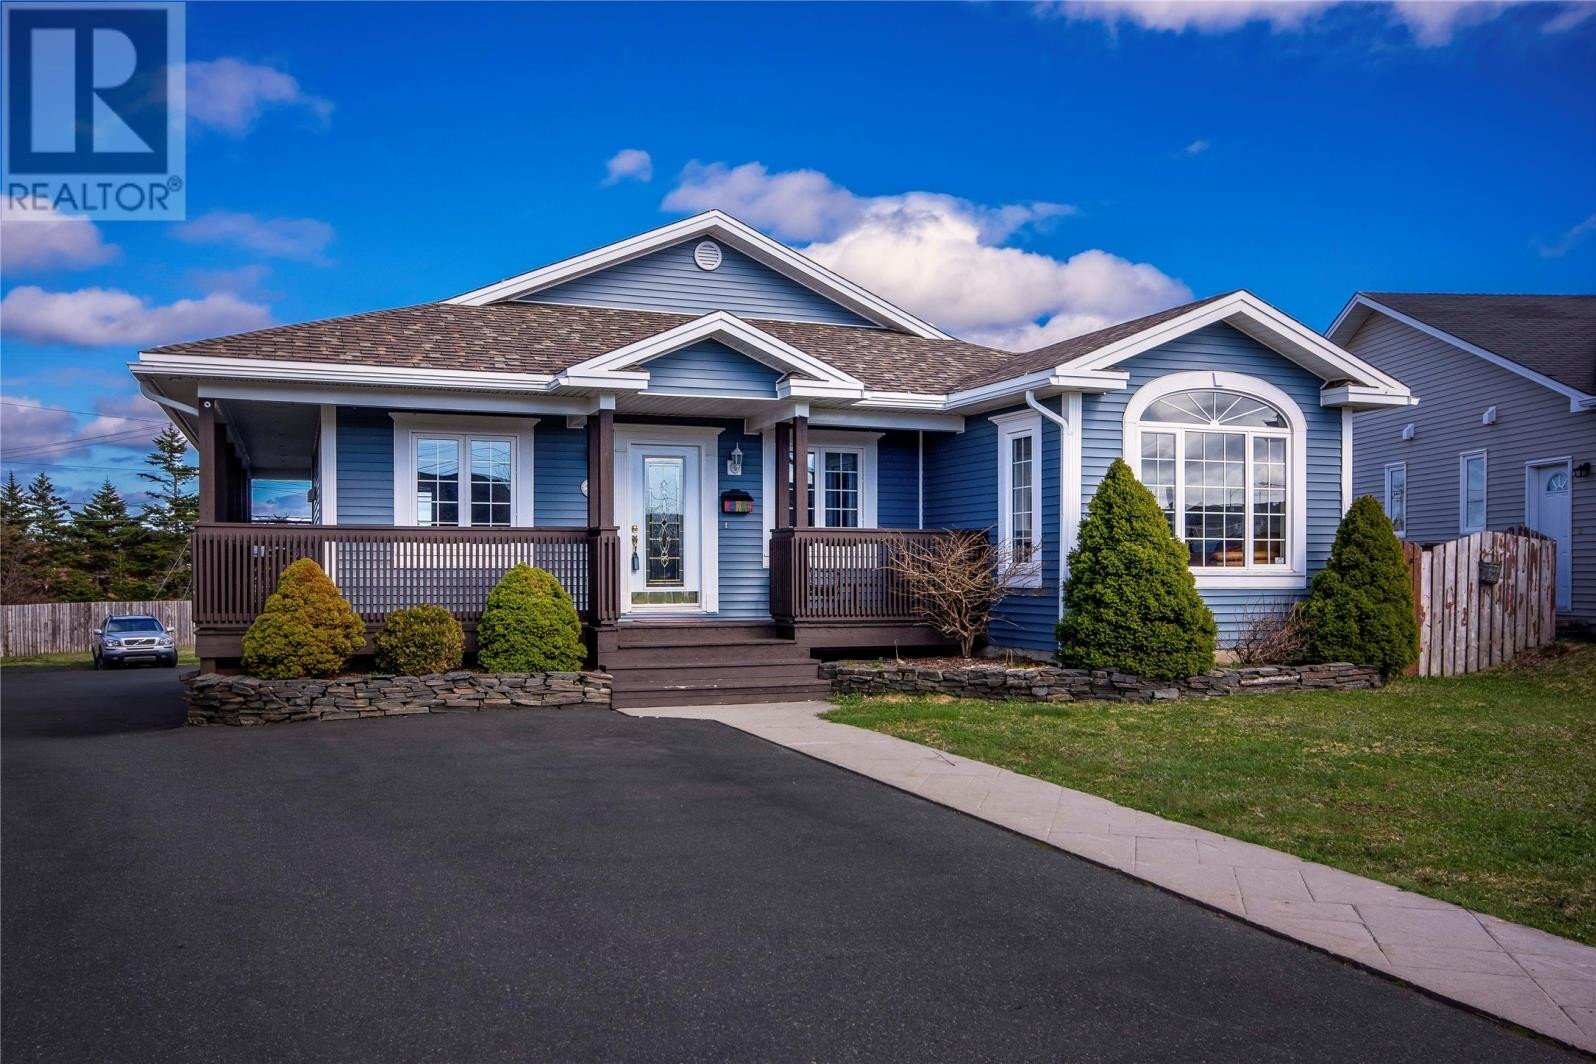 House for sale at 28 Bayberry Pl St. John's Newfoundland - MLS: 1224862